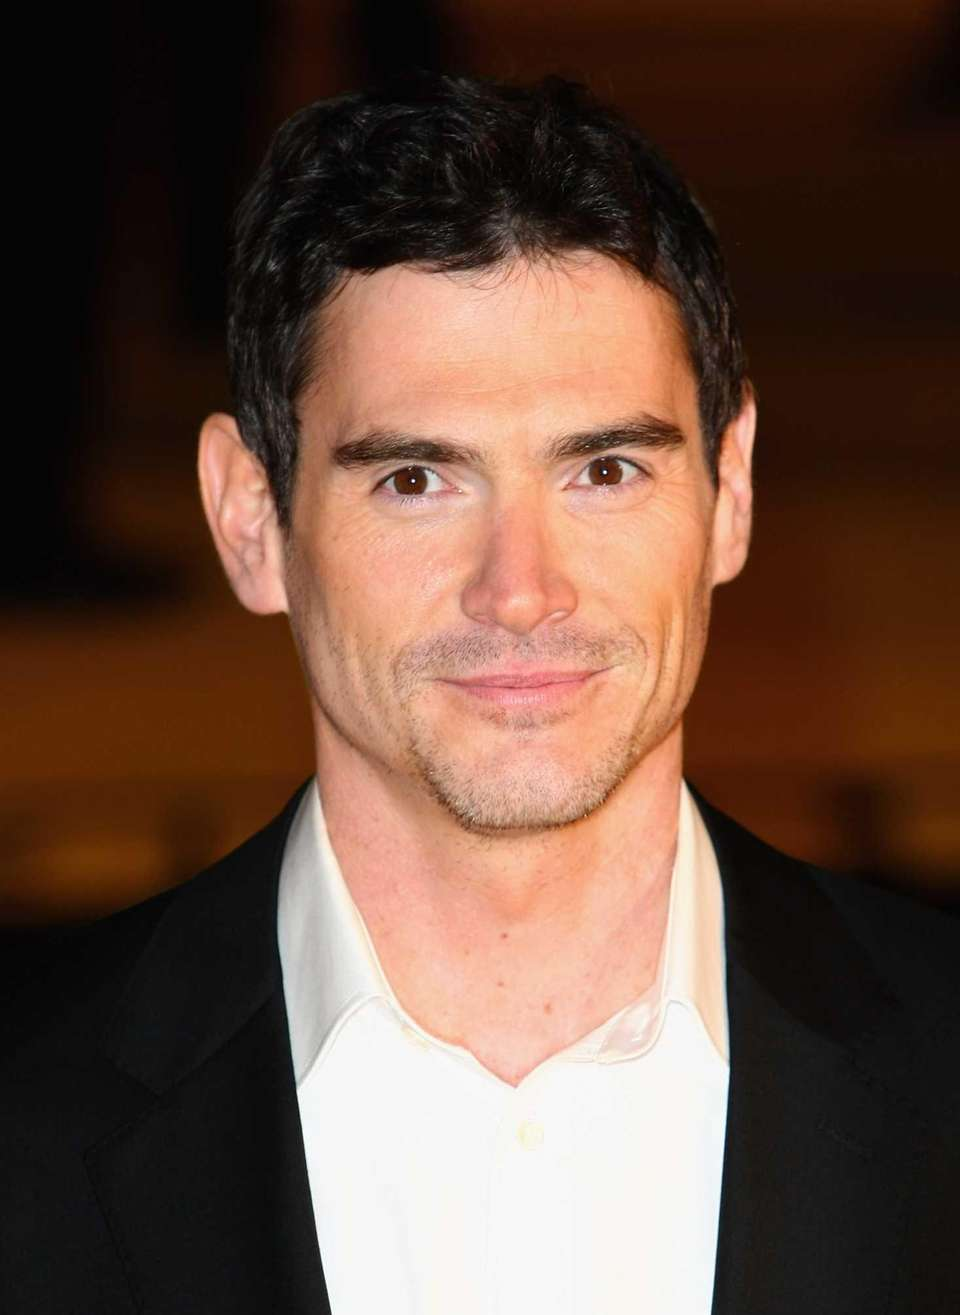 Actor Billy Crudup, who made his film debut